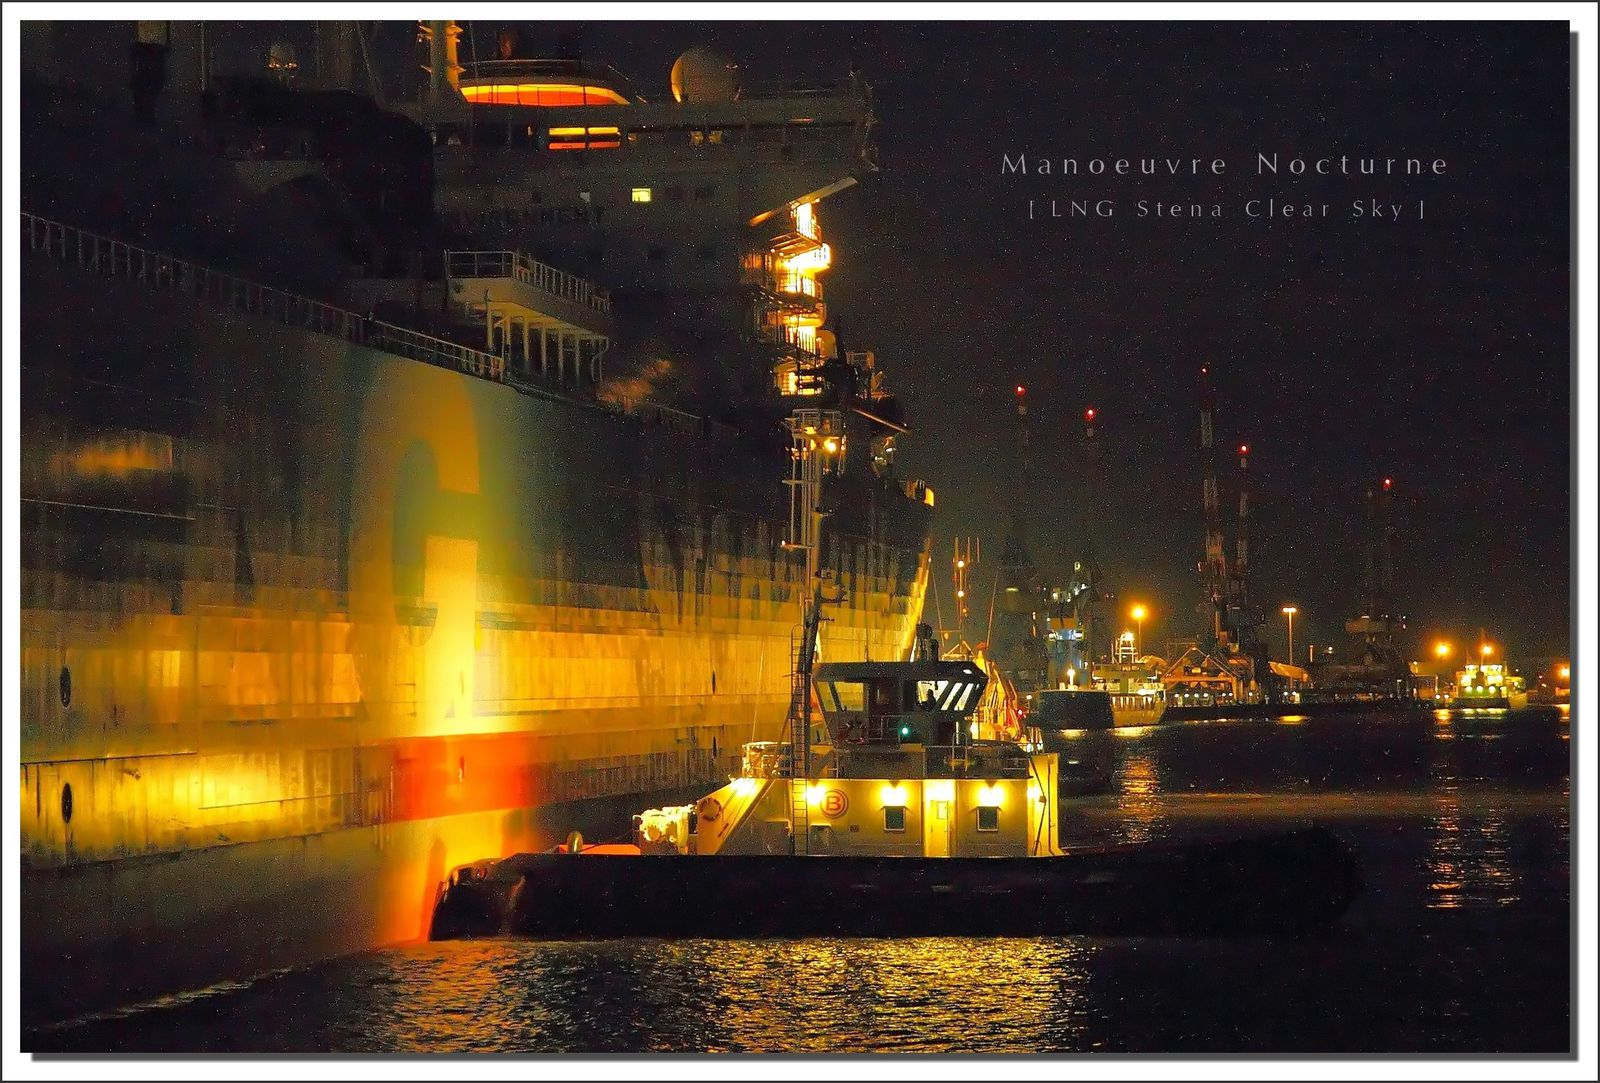 Album - LNG Stena Clear Sky